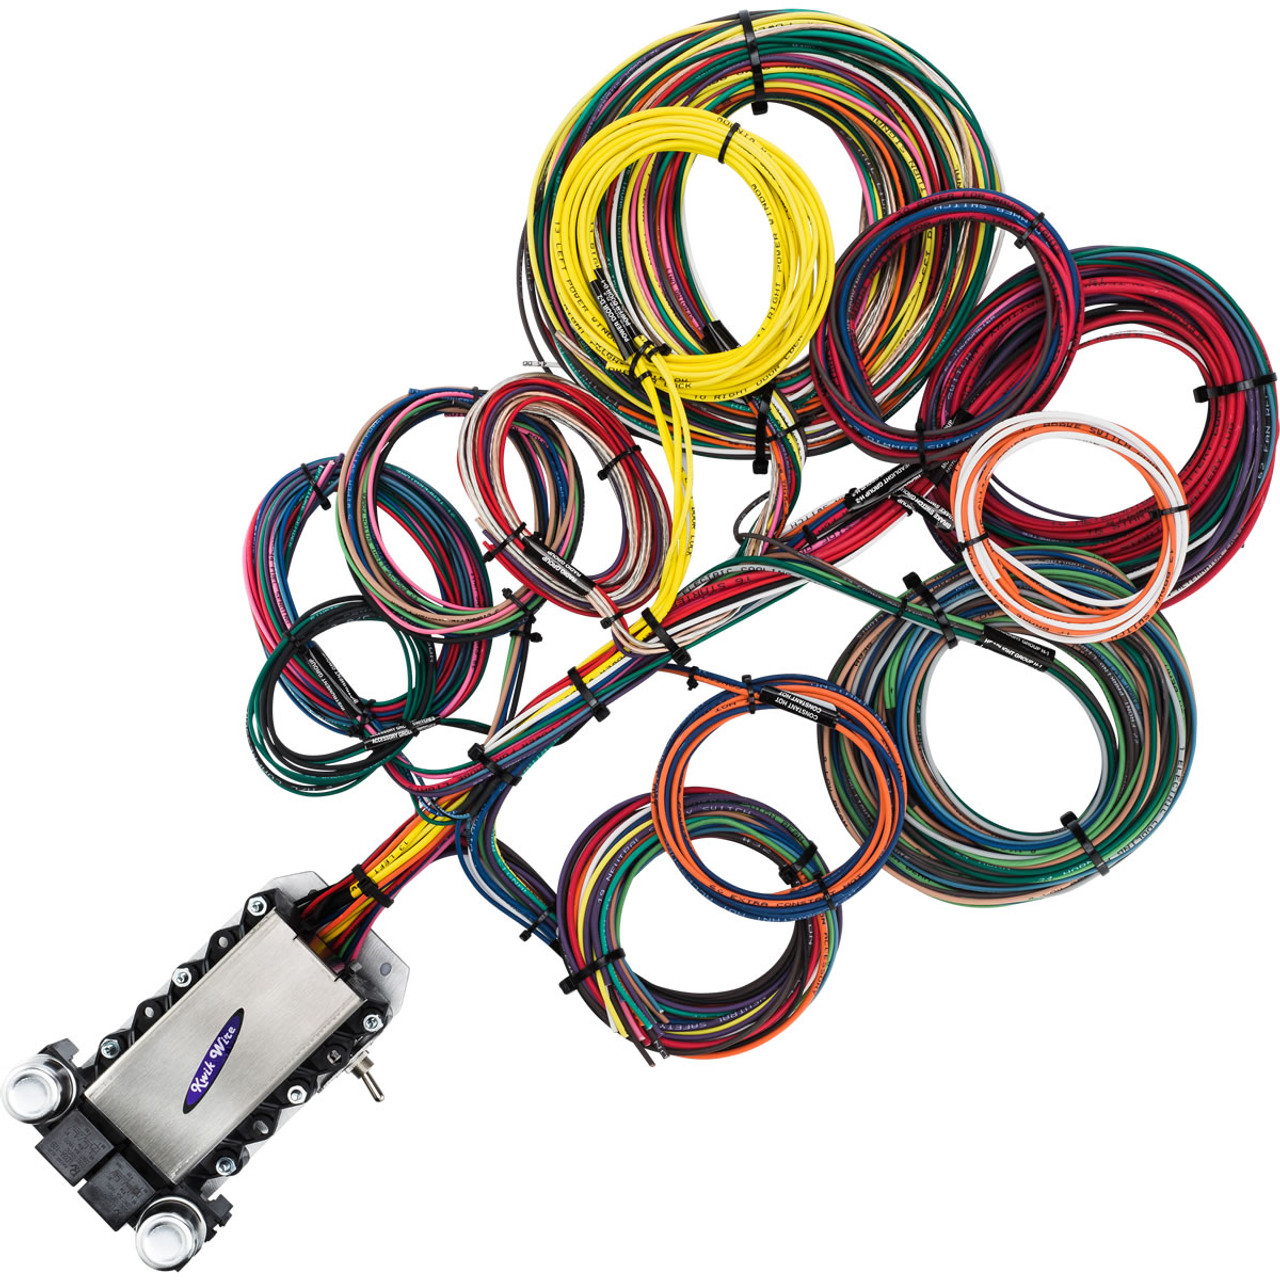 small resolution of 22 circuit wire harness kwikwire com electrify your ride wire harness instructions wire harness instruction